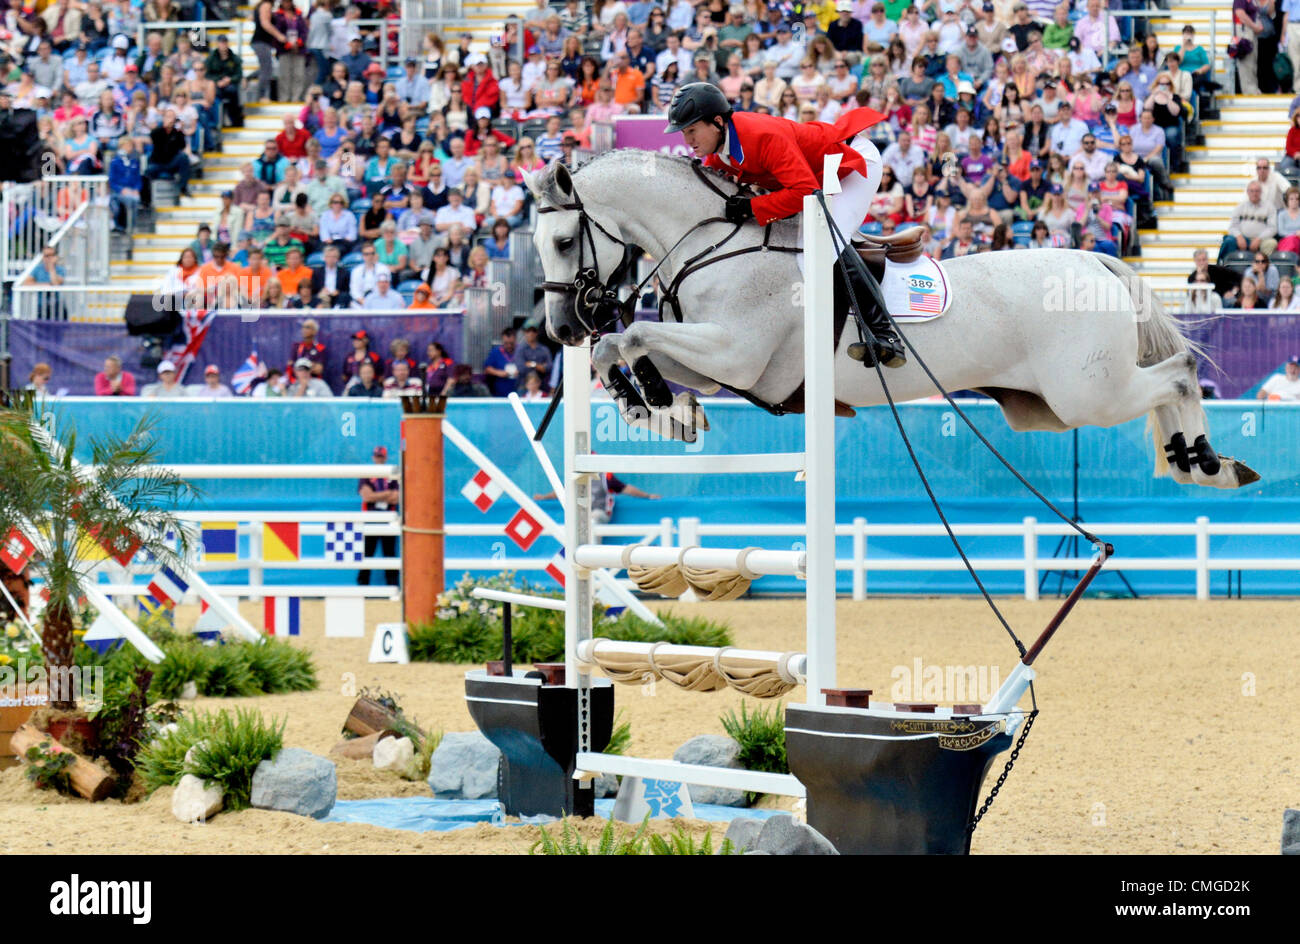 London, UK. 6th August, 2012. Greenwich Park. Olympic Equestrian Team Showjumping McLain Ward USA riding Antares - Stock Image